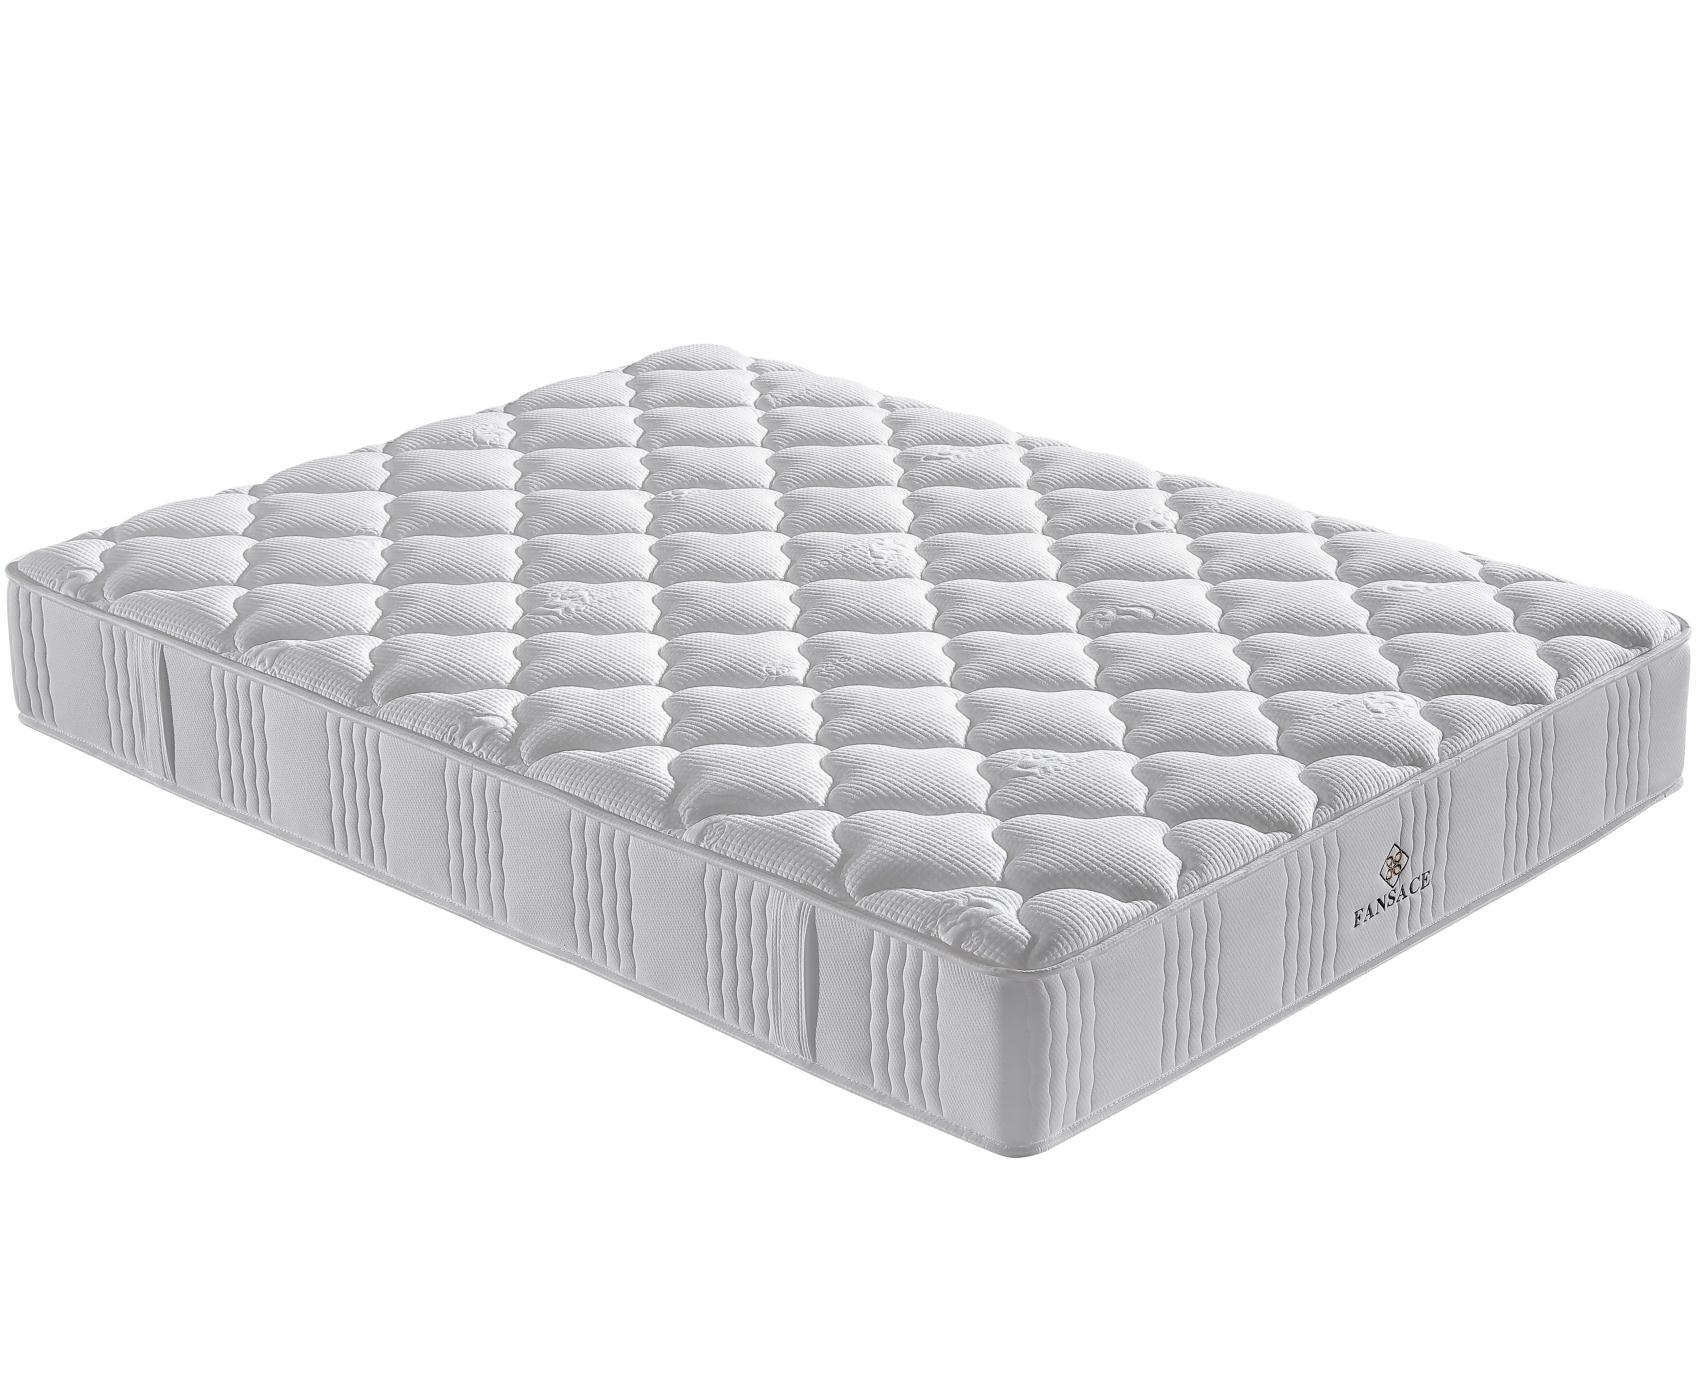 Fansace 21PA-01 | Hotel Pocket Coil Mattress with Full Size Cheap Price